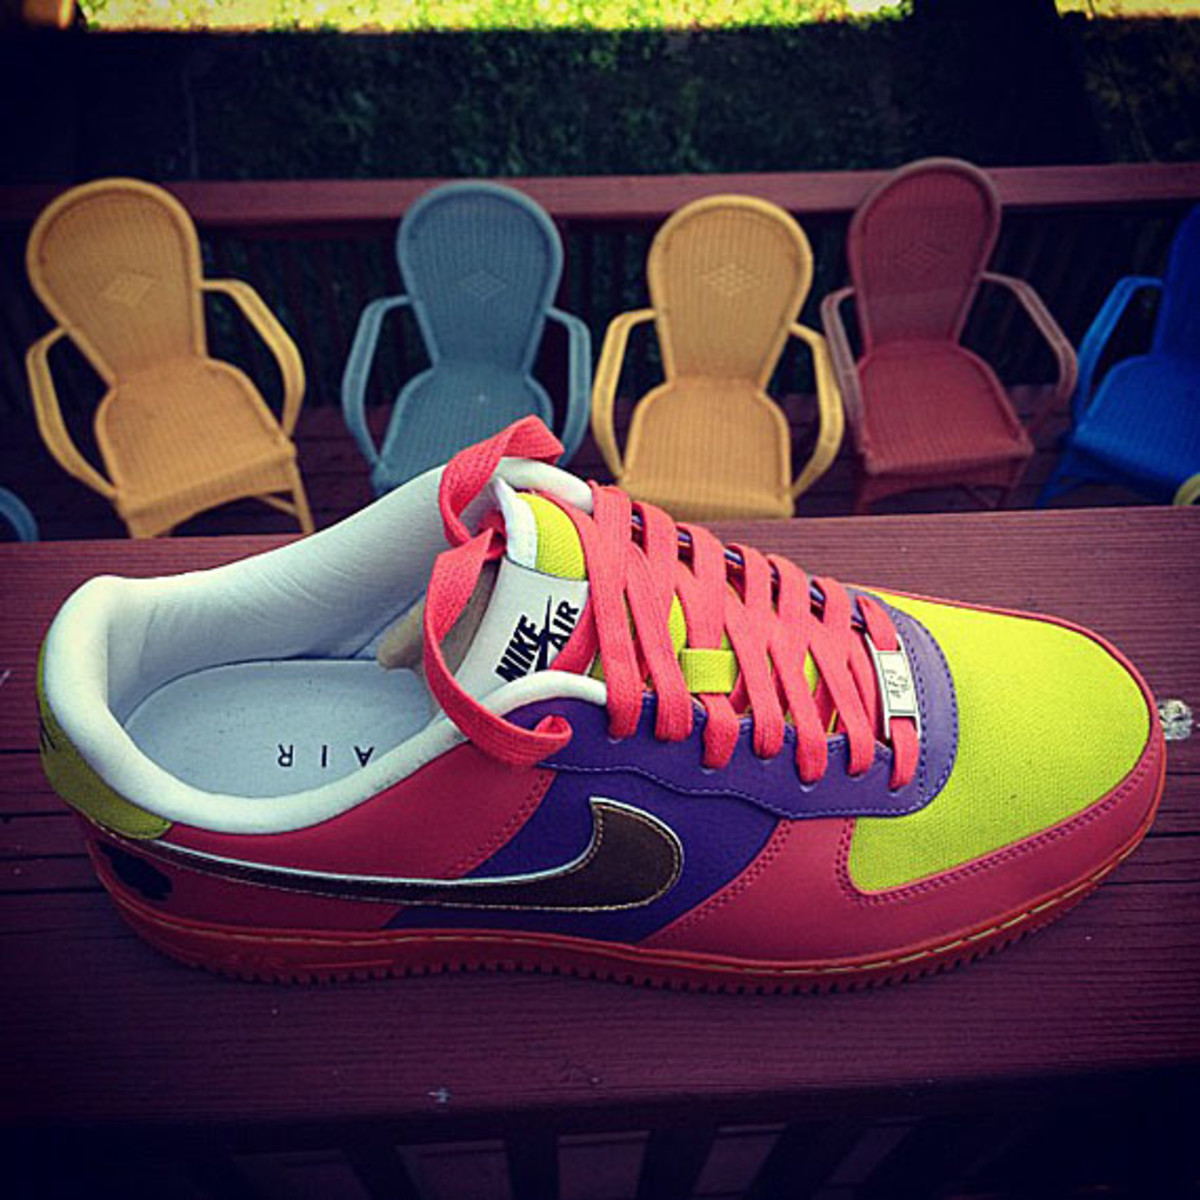 questlove-sneaker-collection-05